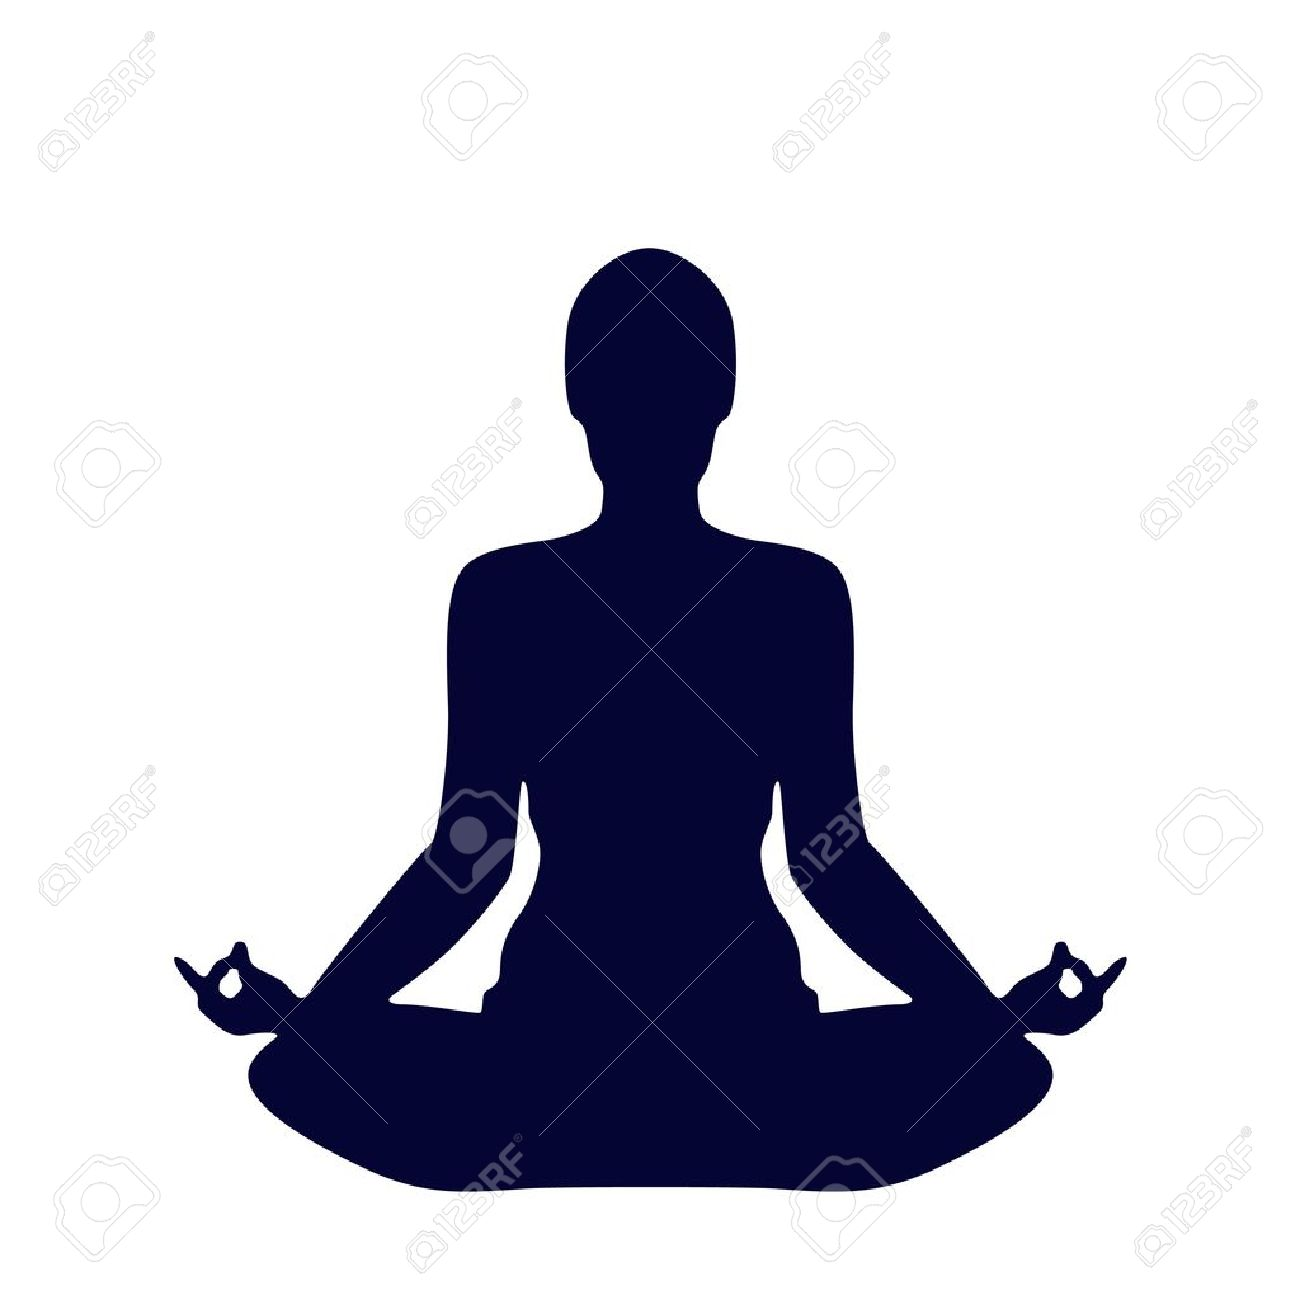 Pose Yoga Silhouette Isolated